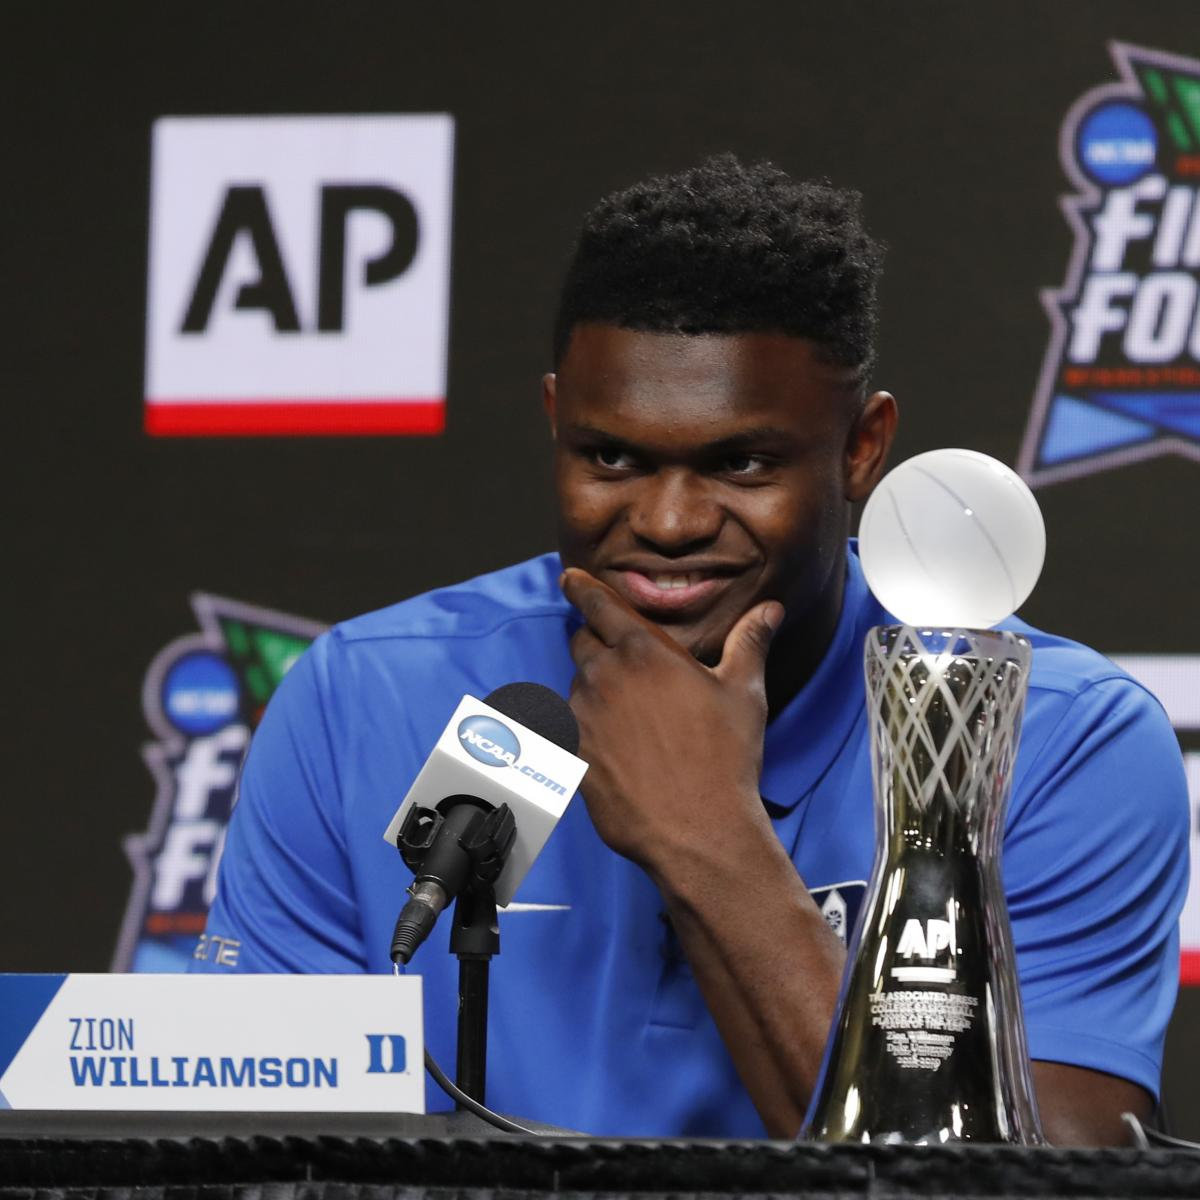 Consider Jerry West a fan of Zion Williamson. The NBA Hall of Famer and Los Angeles' Clippers advisor said on the Dan Patrick Show on Thursday that passing on the Duke superstar with the top overall pick would be a serious mistake...